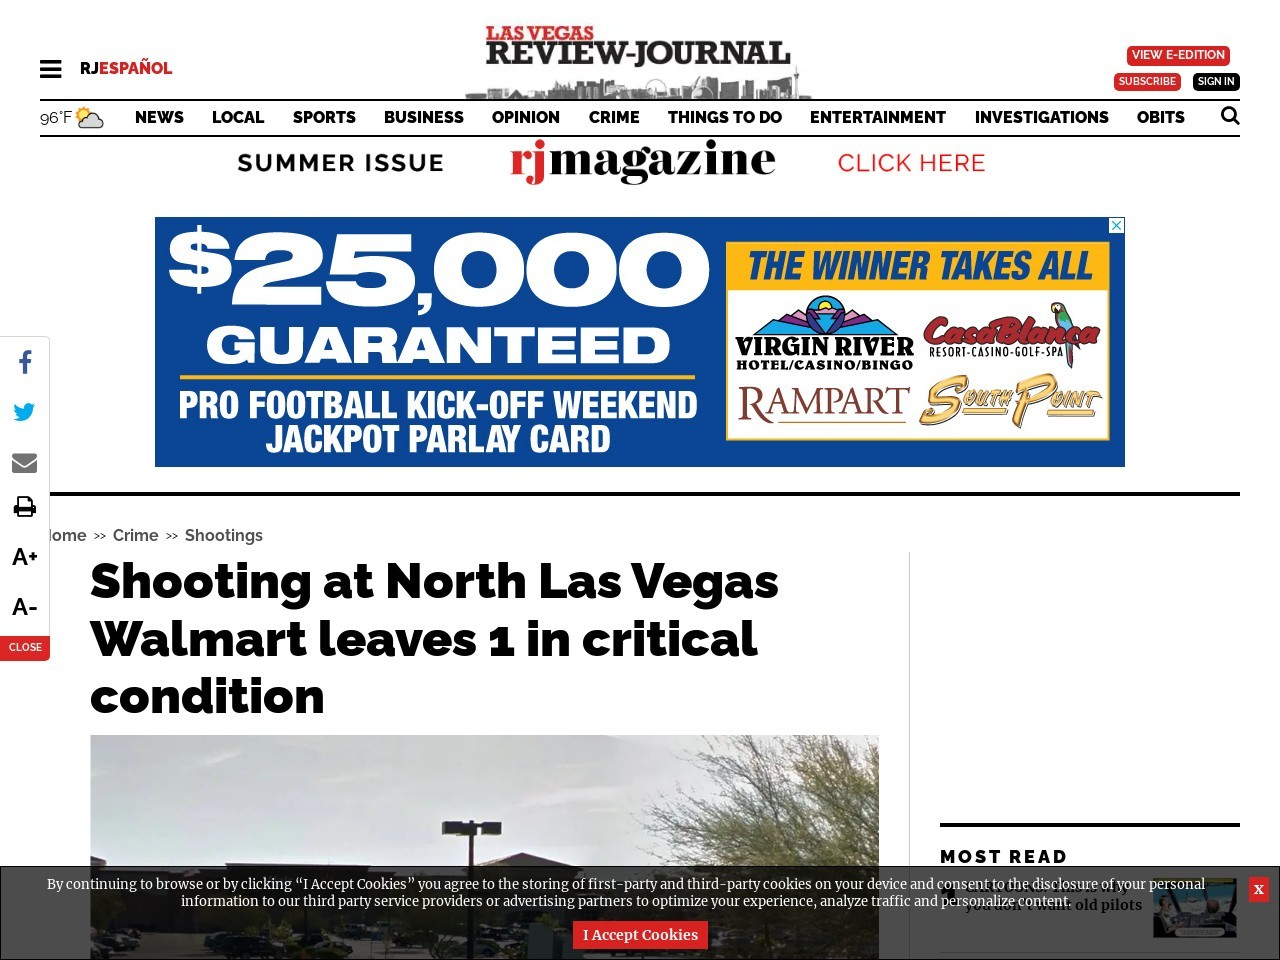 Shooting at North Las Vegas Walmart leaves 1 in critical condition